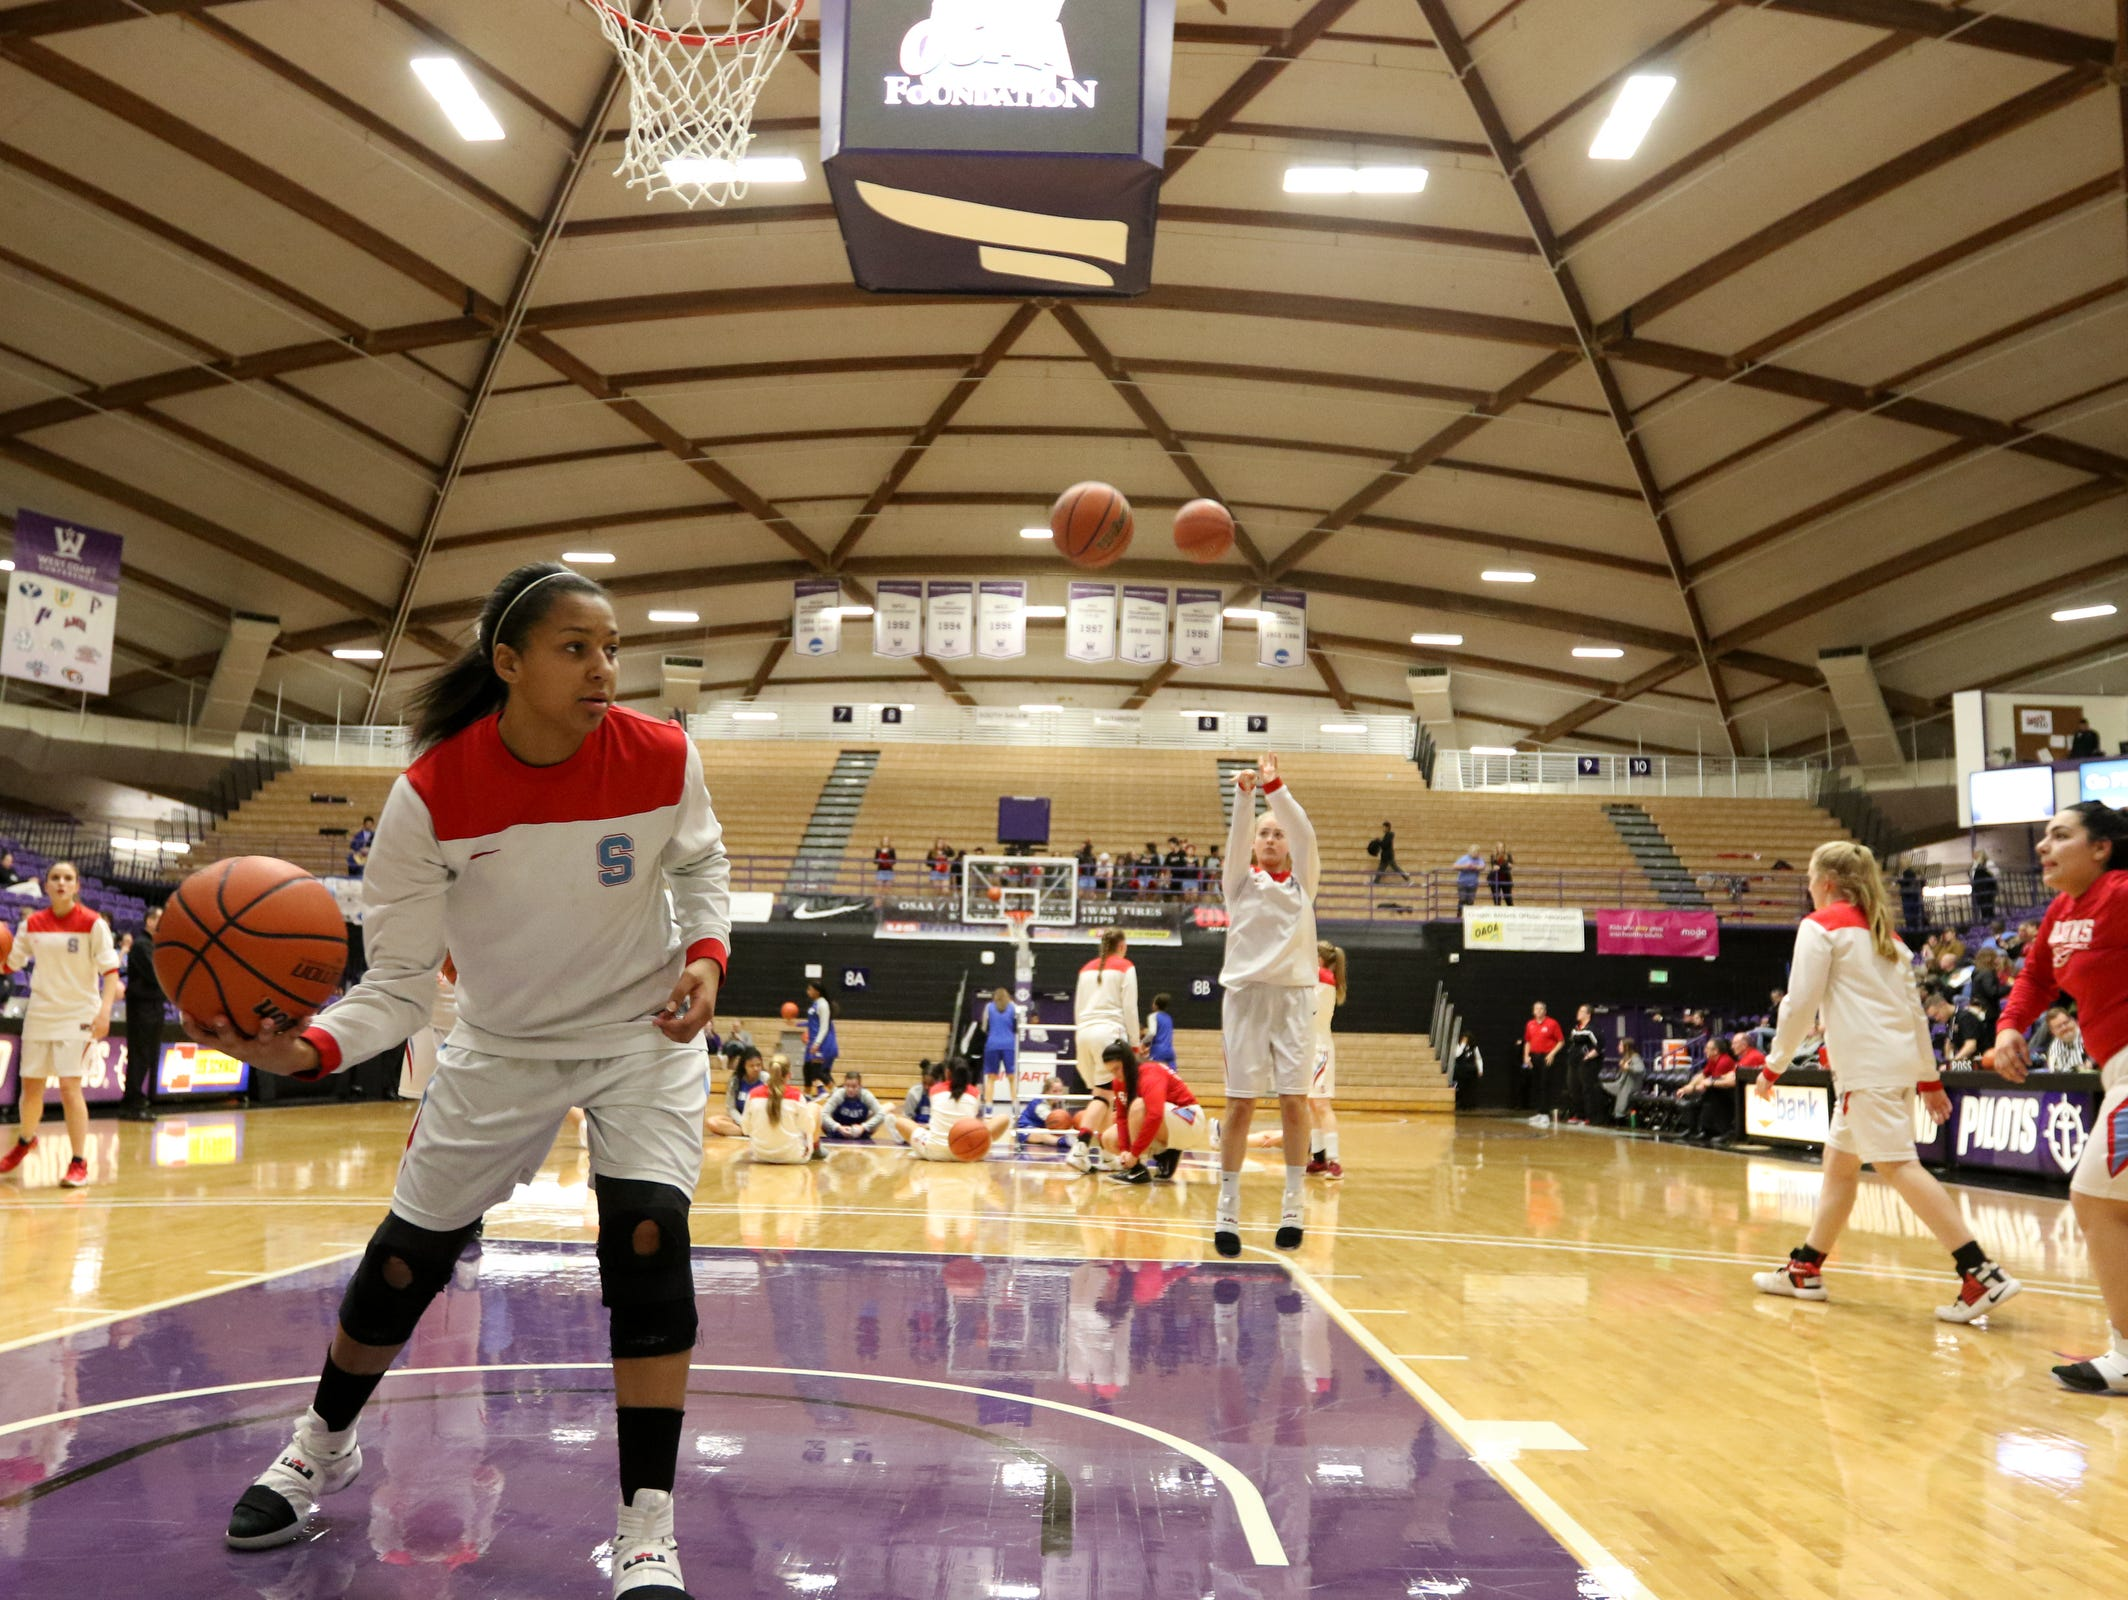 South Salem warms up before the Grant vs. South Salem girl's basketball game to determine third place in the OSAA Class 6A State Championships at the University of Portland on Saturday, March 11, 2017. South Salem won the game 58-53.